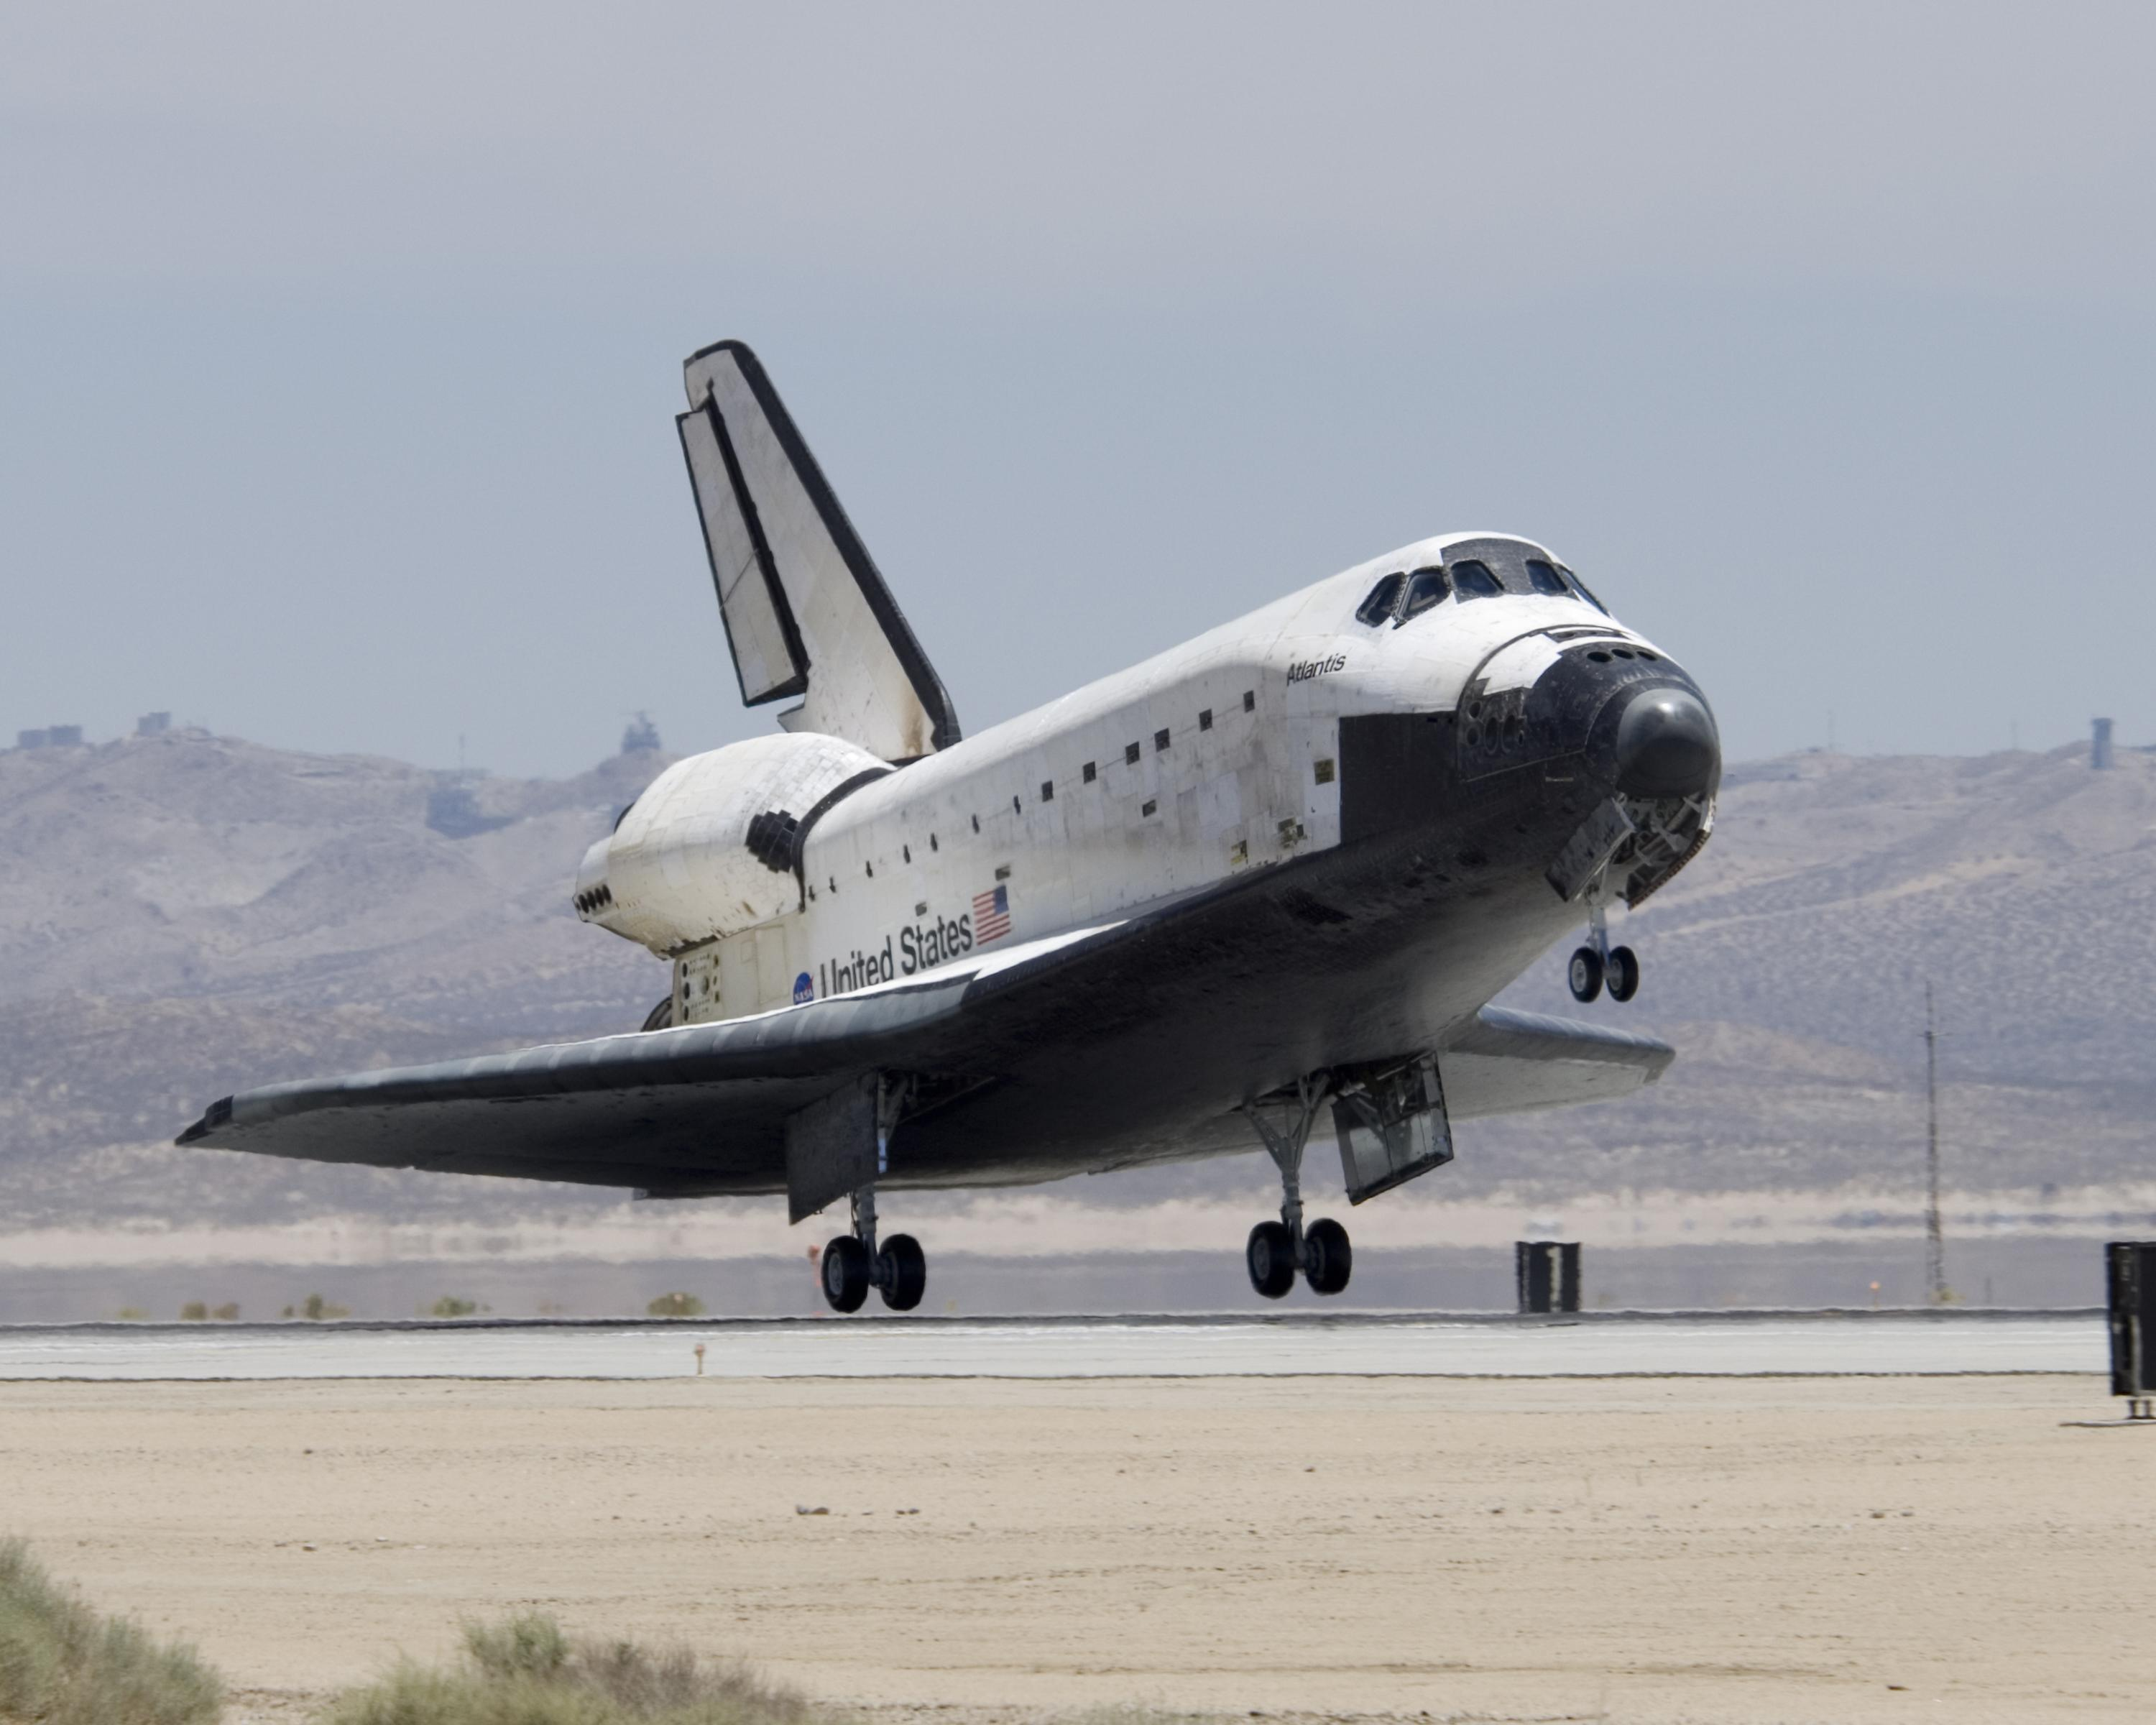 space shuttle landing apk - photo #28